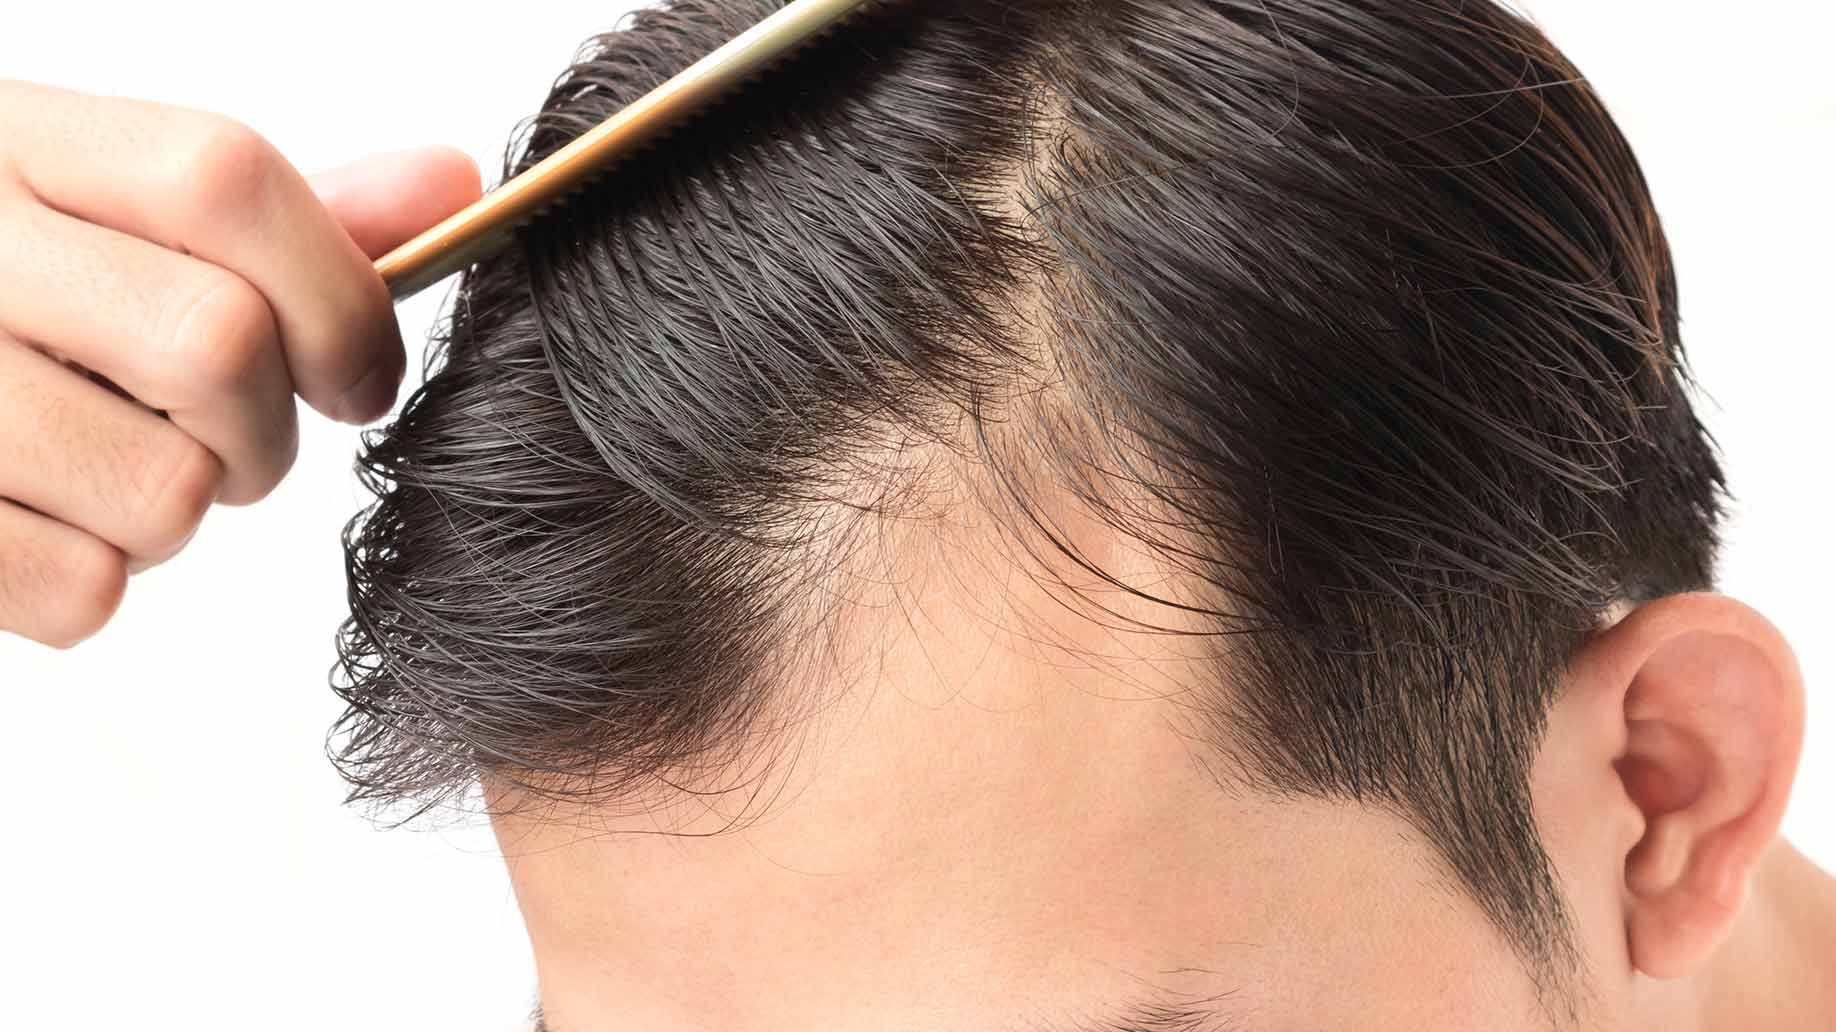 hair loss balding thinning natural remedies